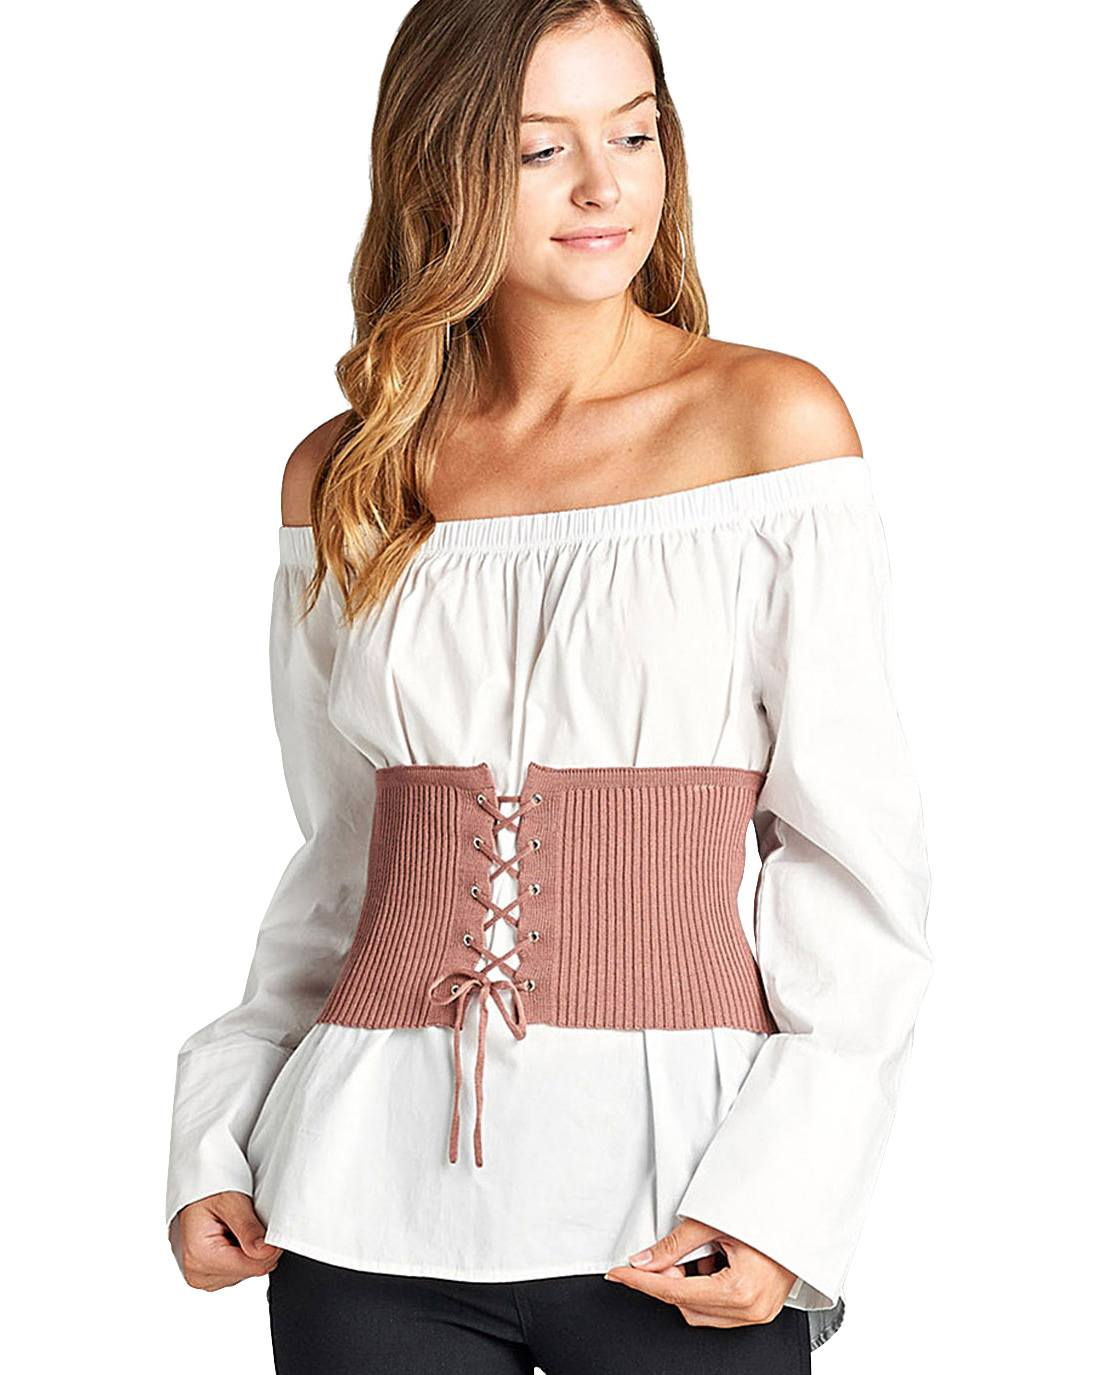 Grommet accents fashion corset-S-MY UPSCALE STORE